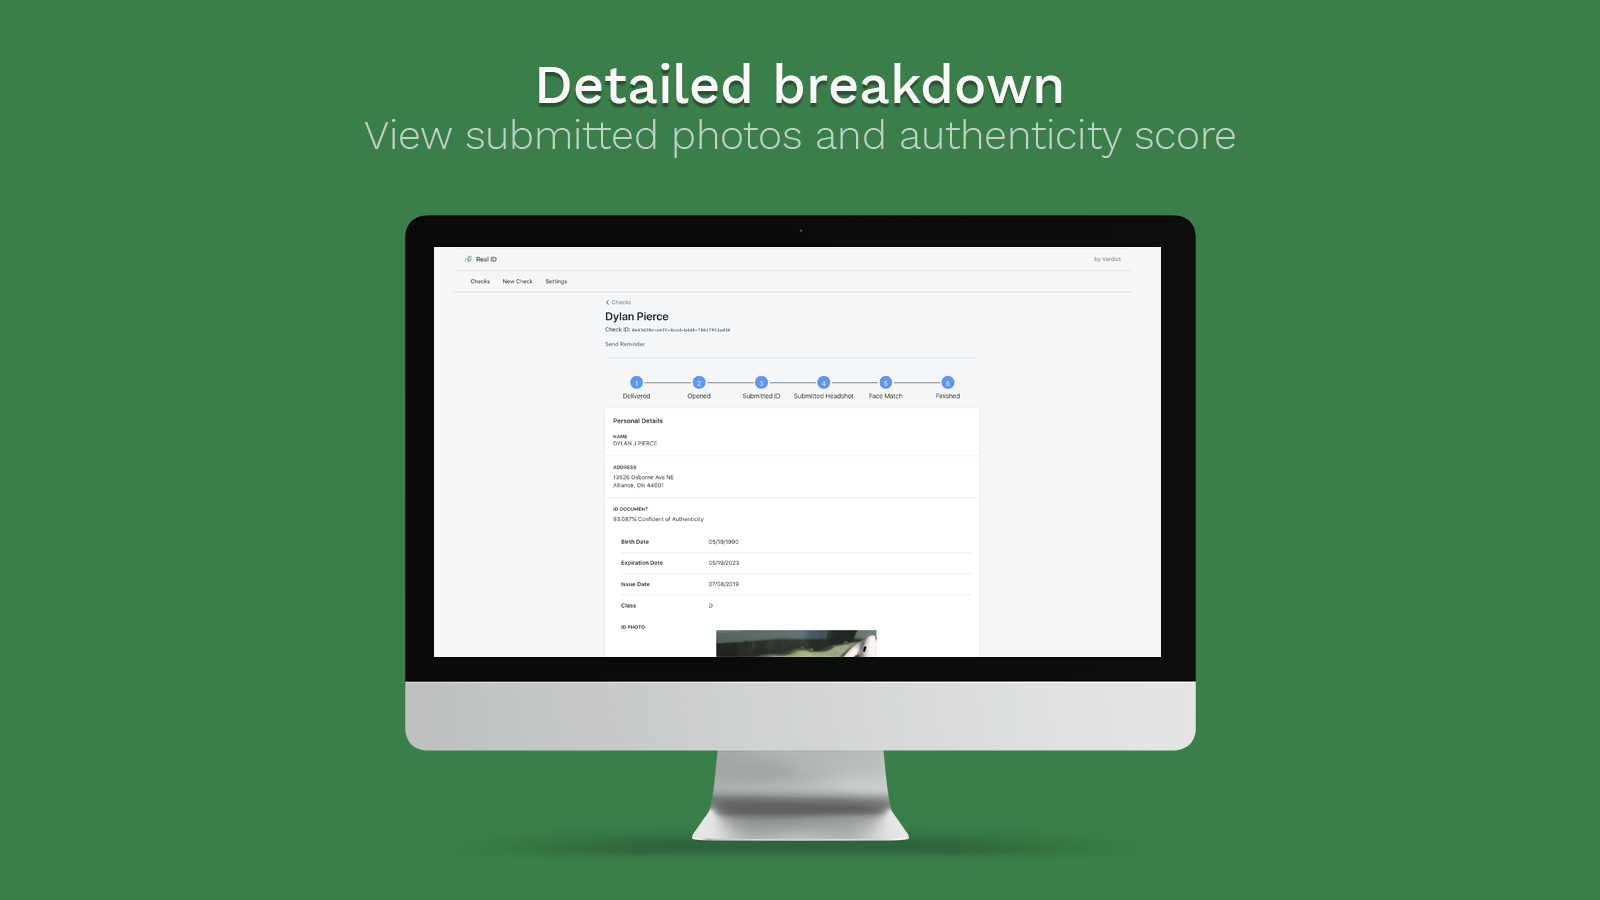 View the complete breakdown of ID photos & authenticity scores